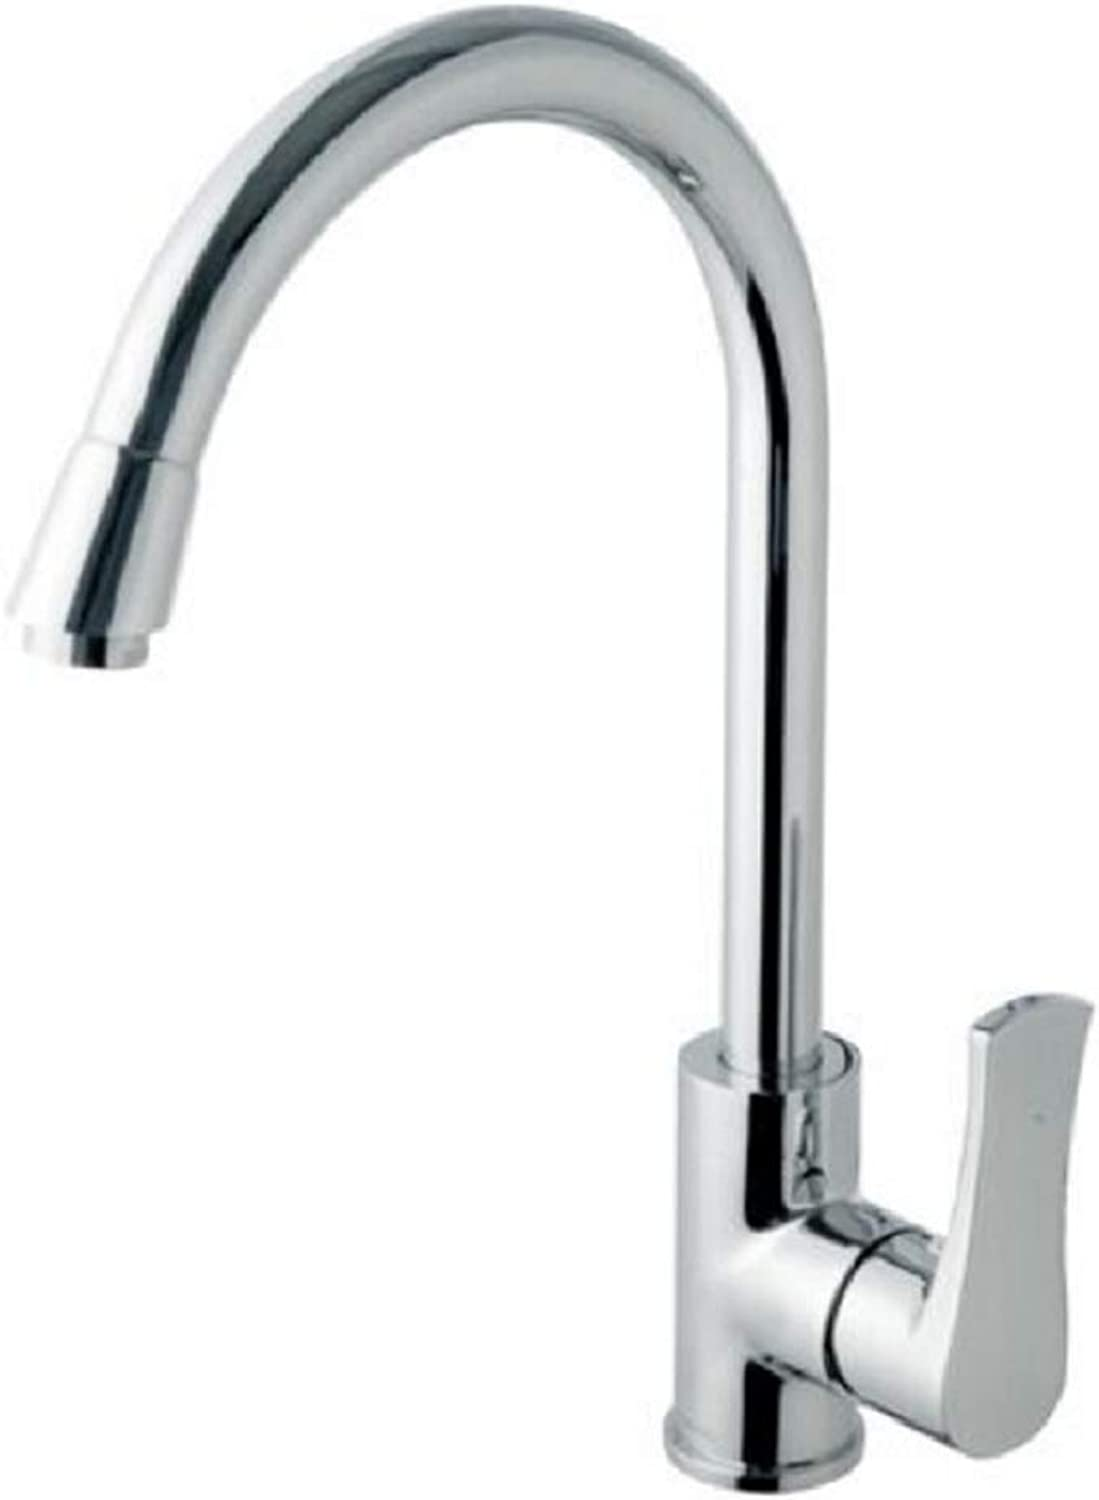 BABATD Klassische Single Handle Commercial Kitchen Sink Wasserhahn Messing 360 Grad Swivel Single Mixe Wasserhahn, Chrom